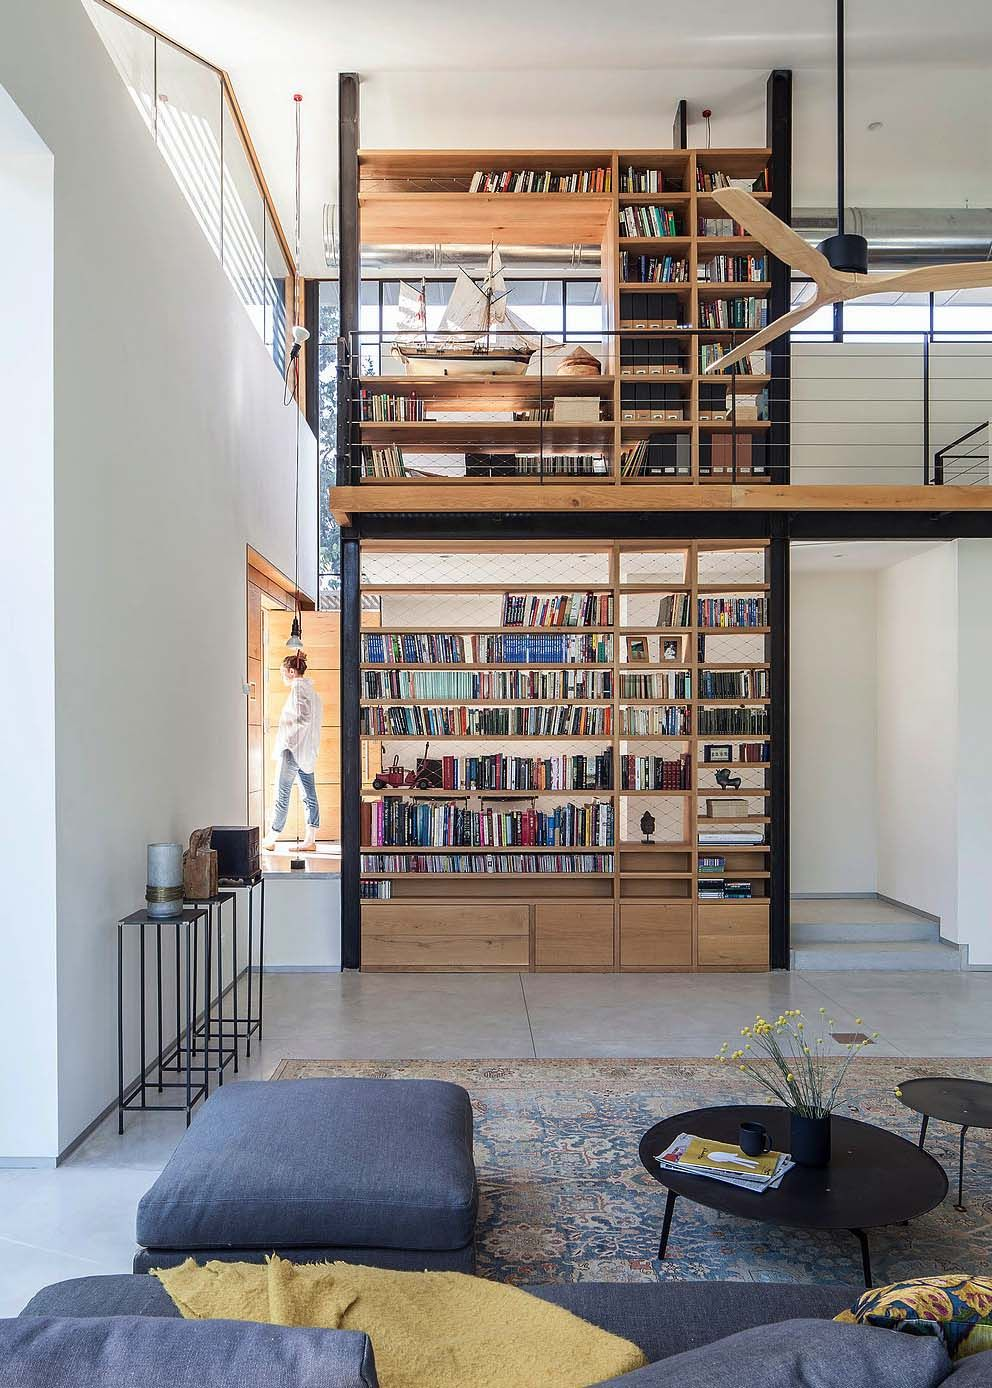 Modern home in Israel reflects Bauhaus and Japanese